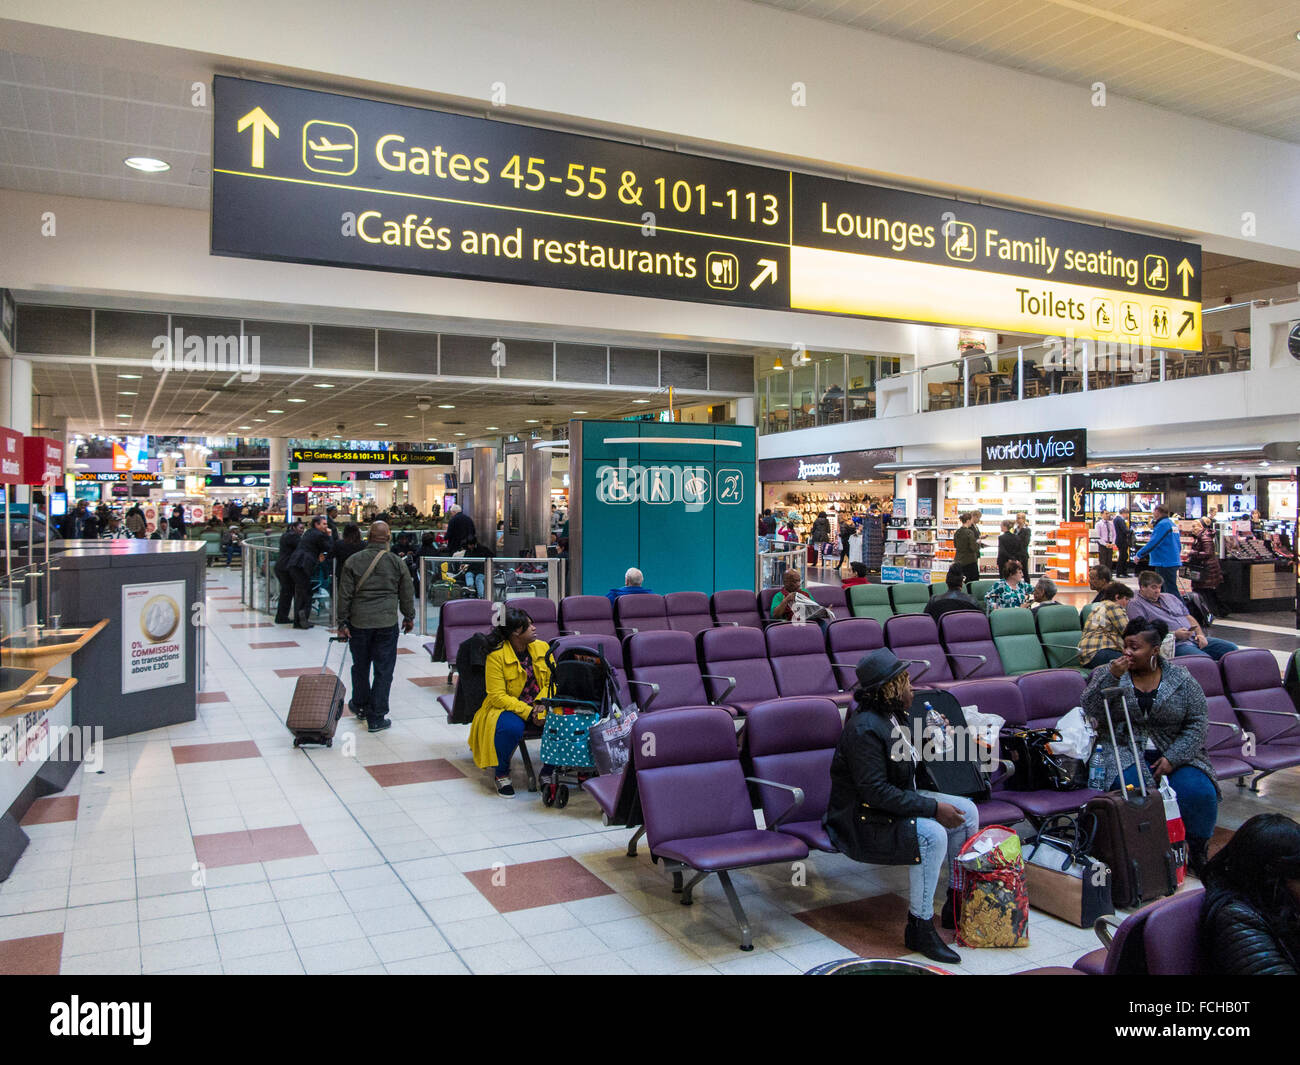 Departure lounge Gatwick Airport - Stock Image